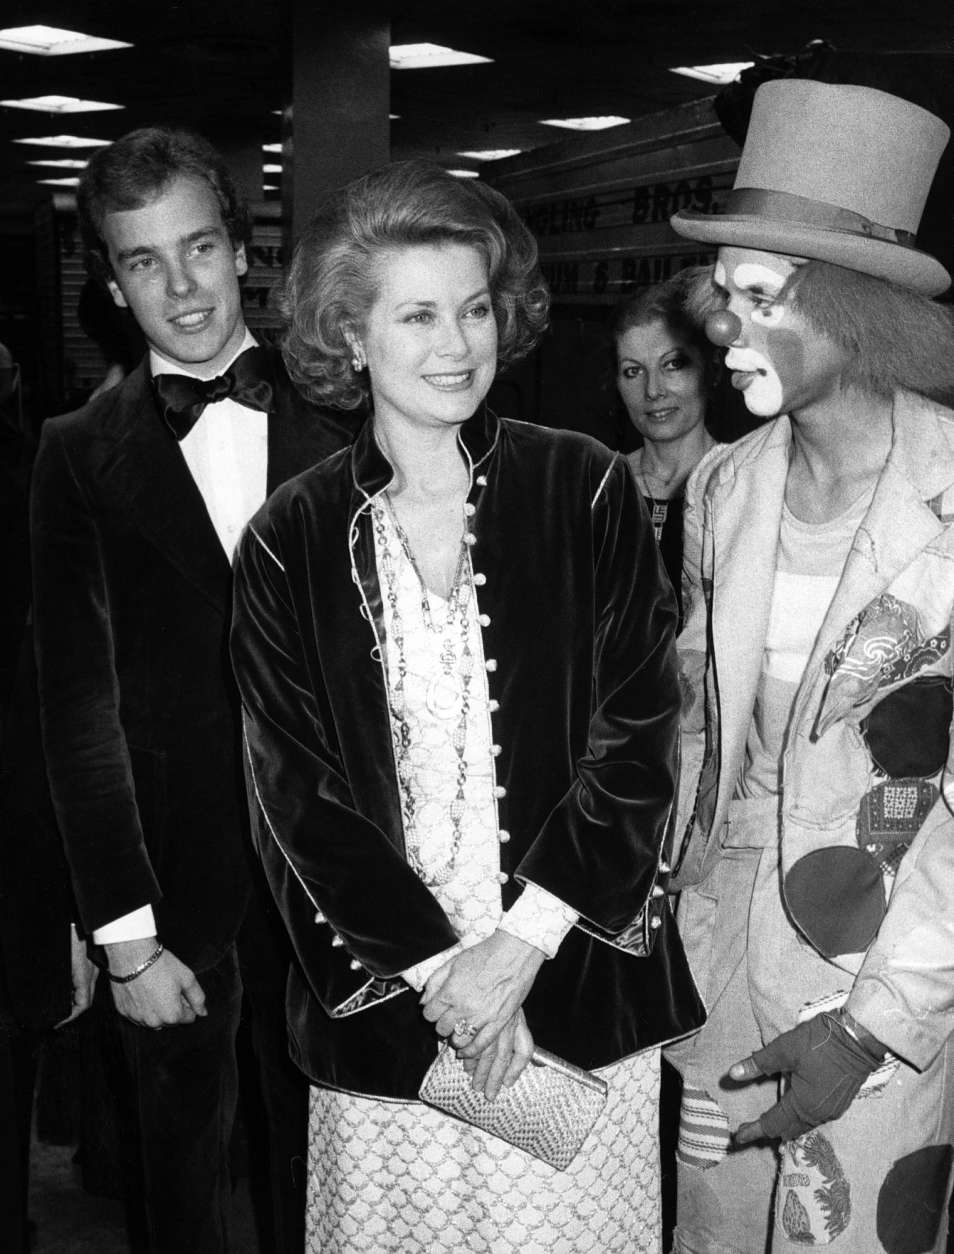 Princess Grace of Monaco, center, and her son Prince Albert, left, chat with clown Duanne Cunningham, Tuesday night, March 29, 1977, at New York's Madison Square Garden. The princess and her son came to watch the opening night performance of the 17th edition of Ringling Bros. and Barium & Dailey Circus. (AP Photo)